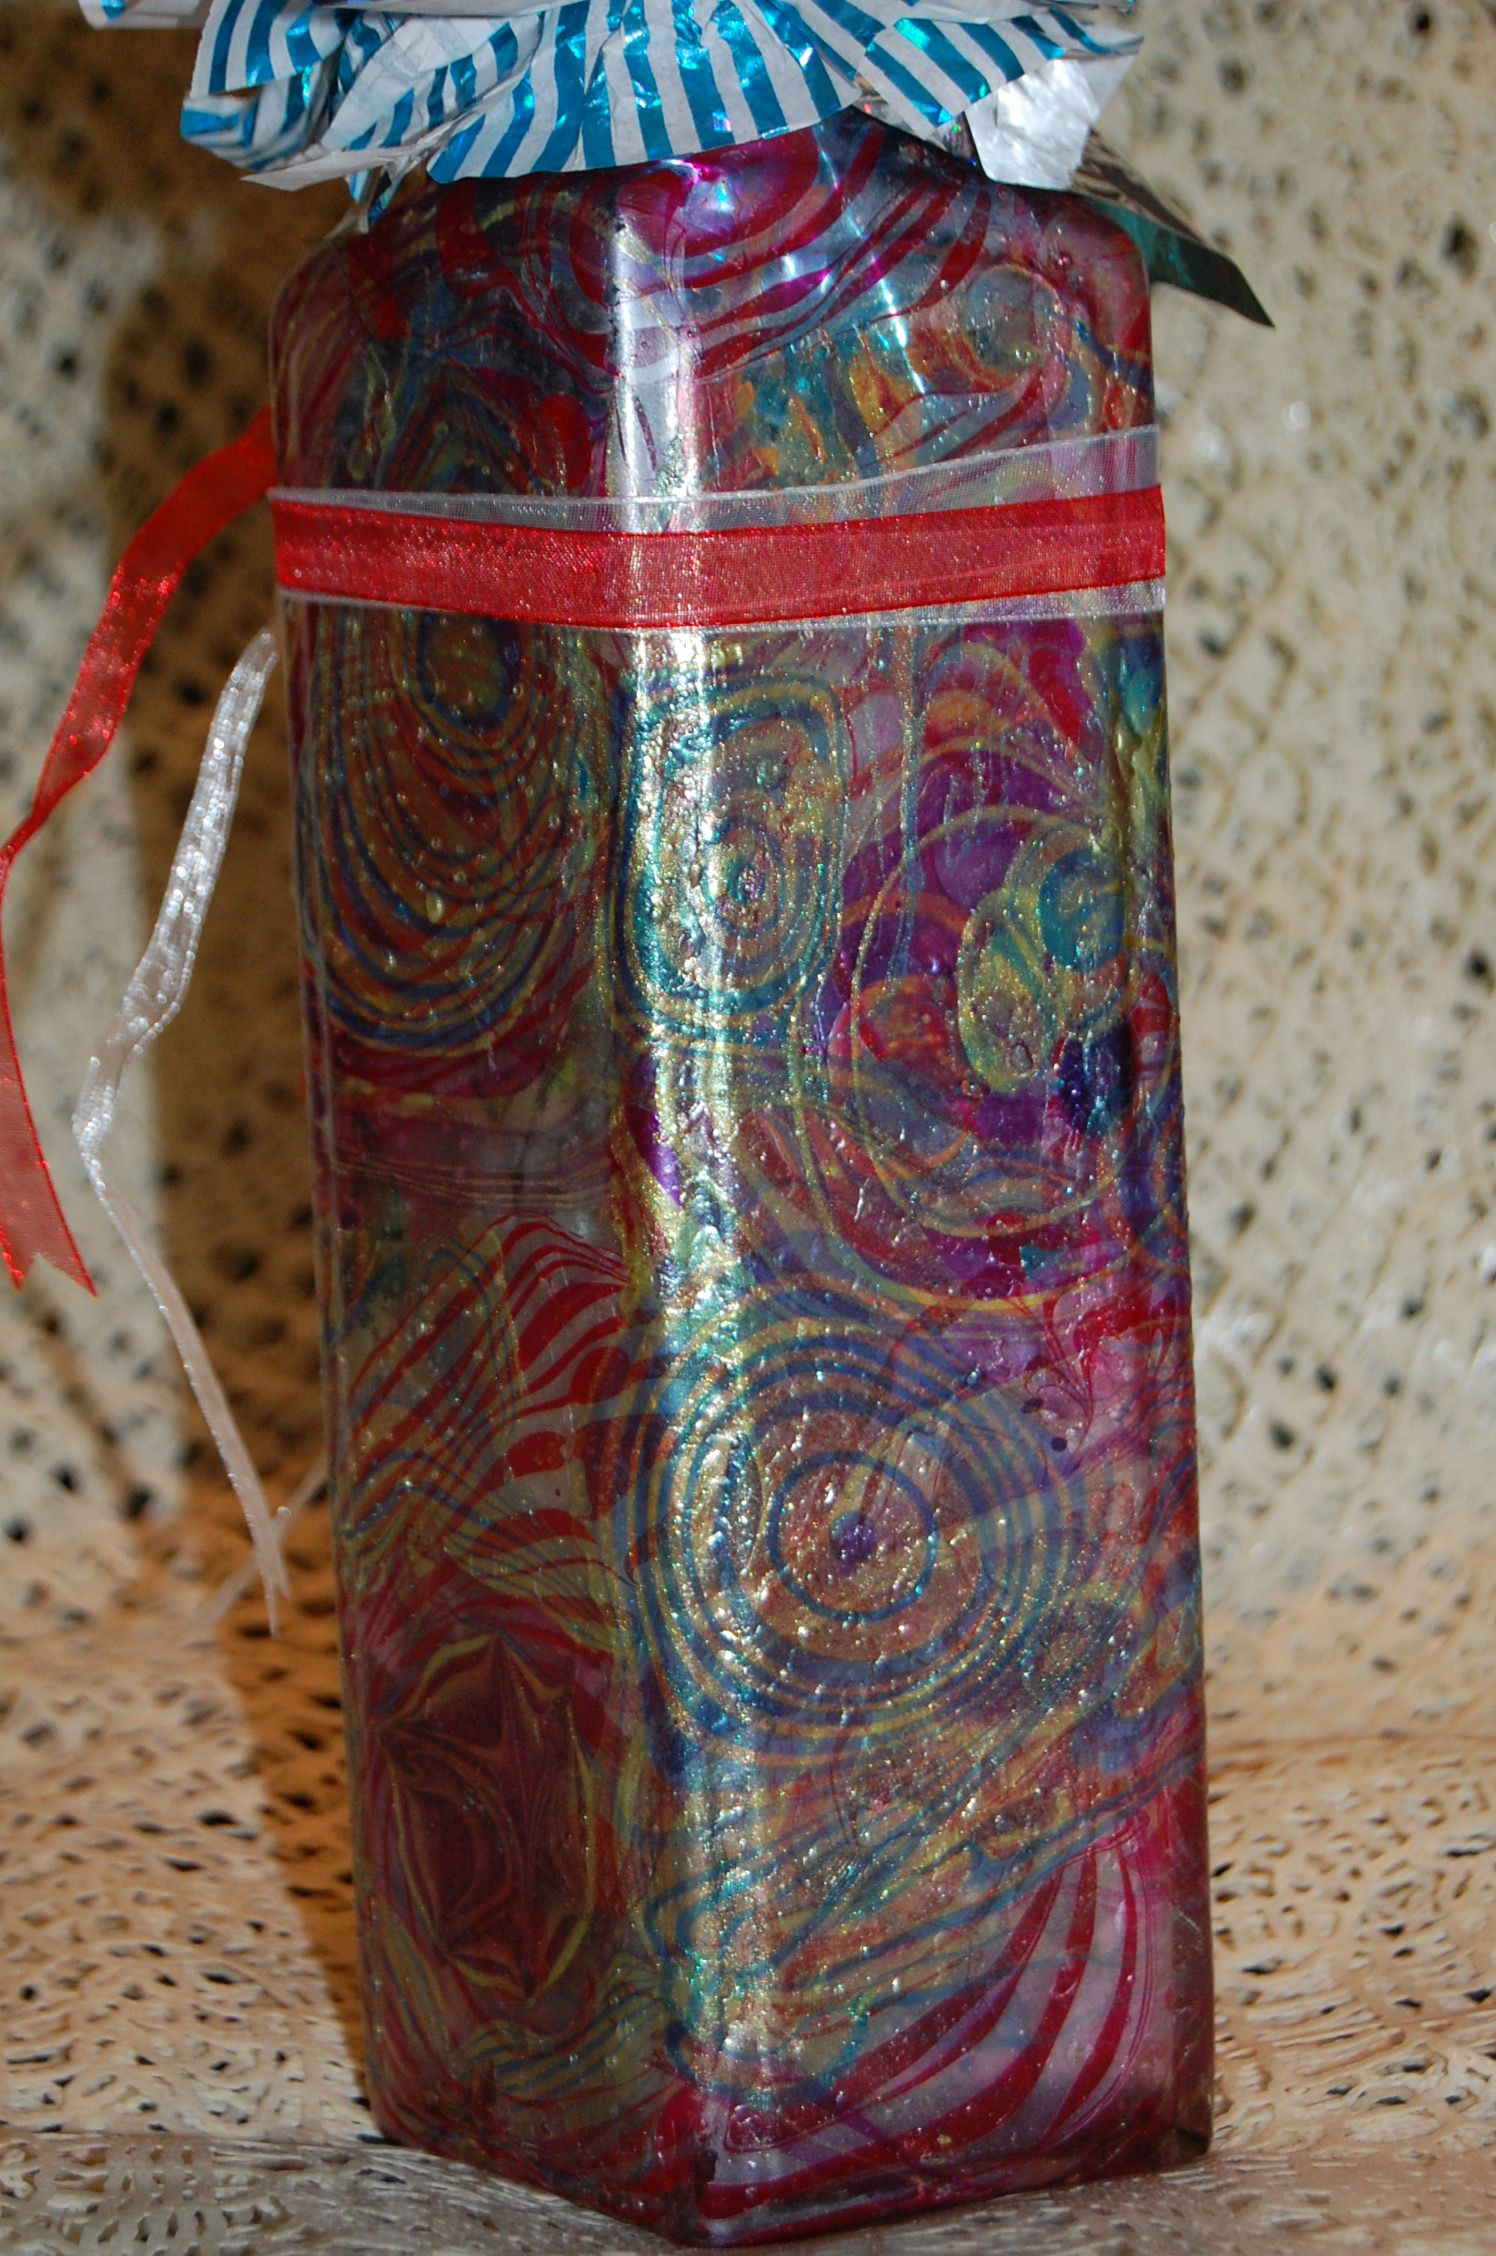 Back side with polish marbling